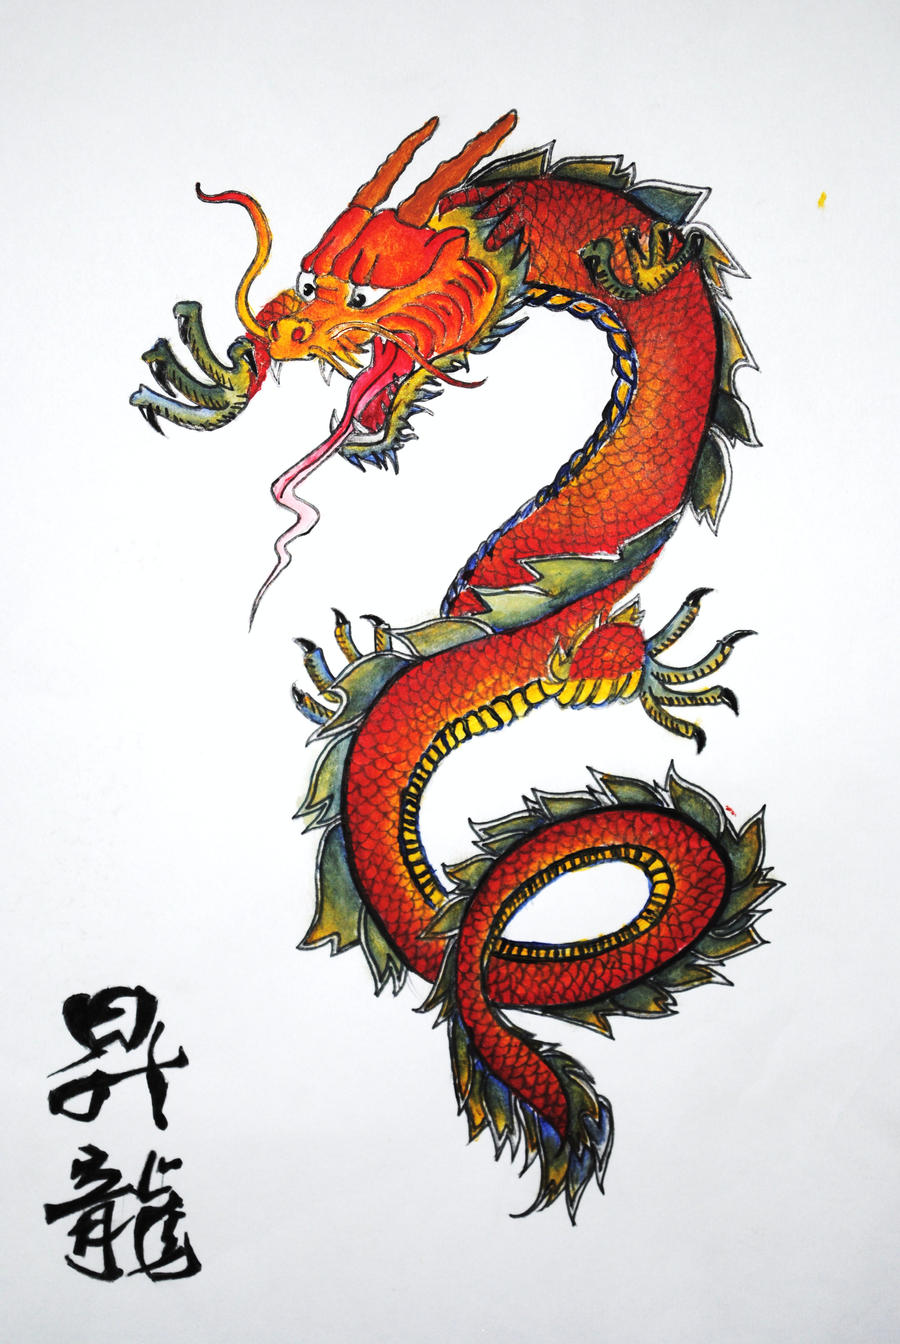 Chinese Dragon' by Sanctuaryy on DeviantArt